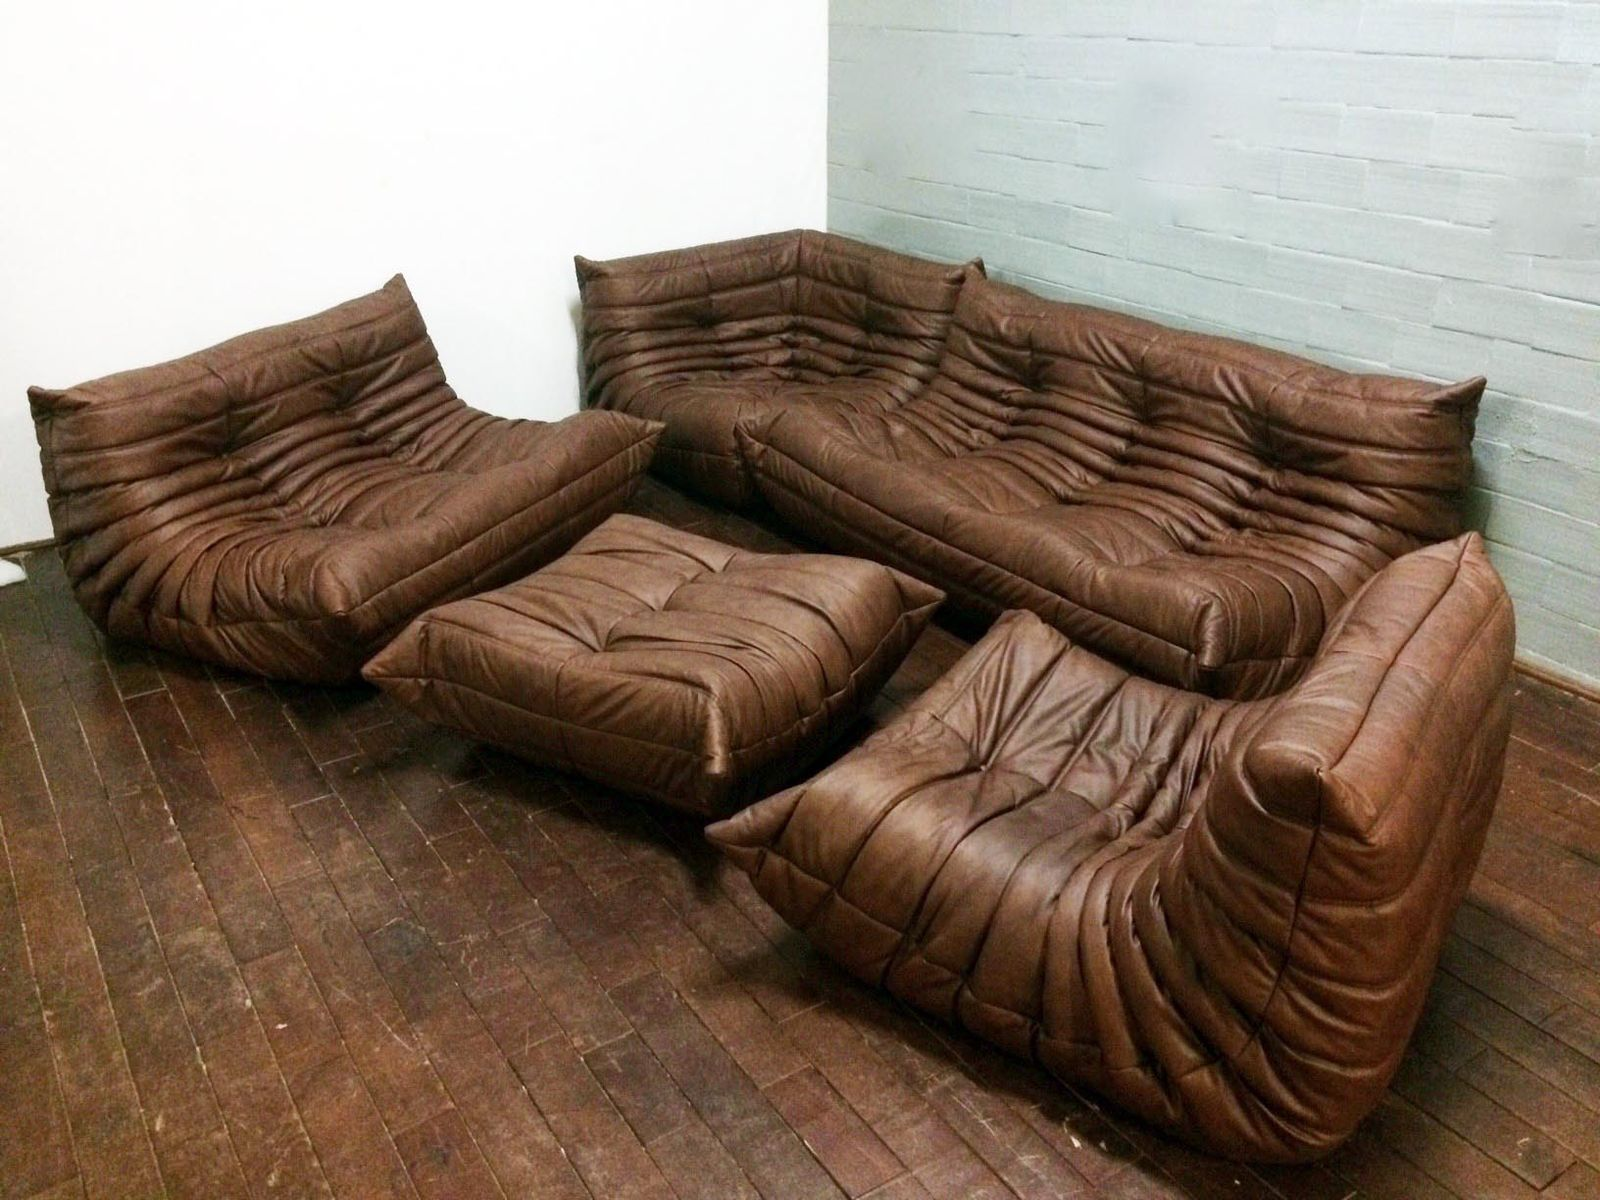 Brown leather togo sofa set by michel ducaroy for ligne roset 1960 for sale at pamono - Togo ligne roset ...